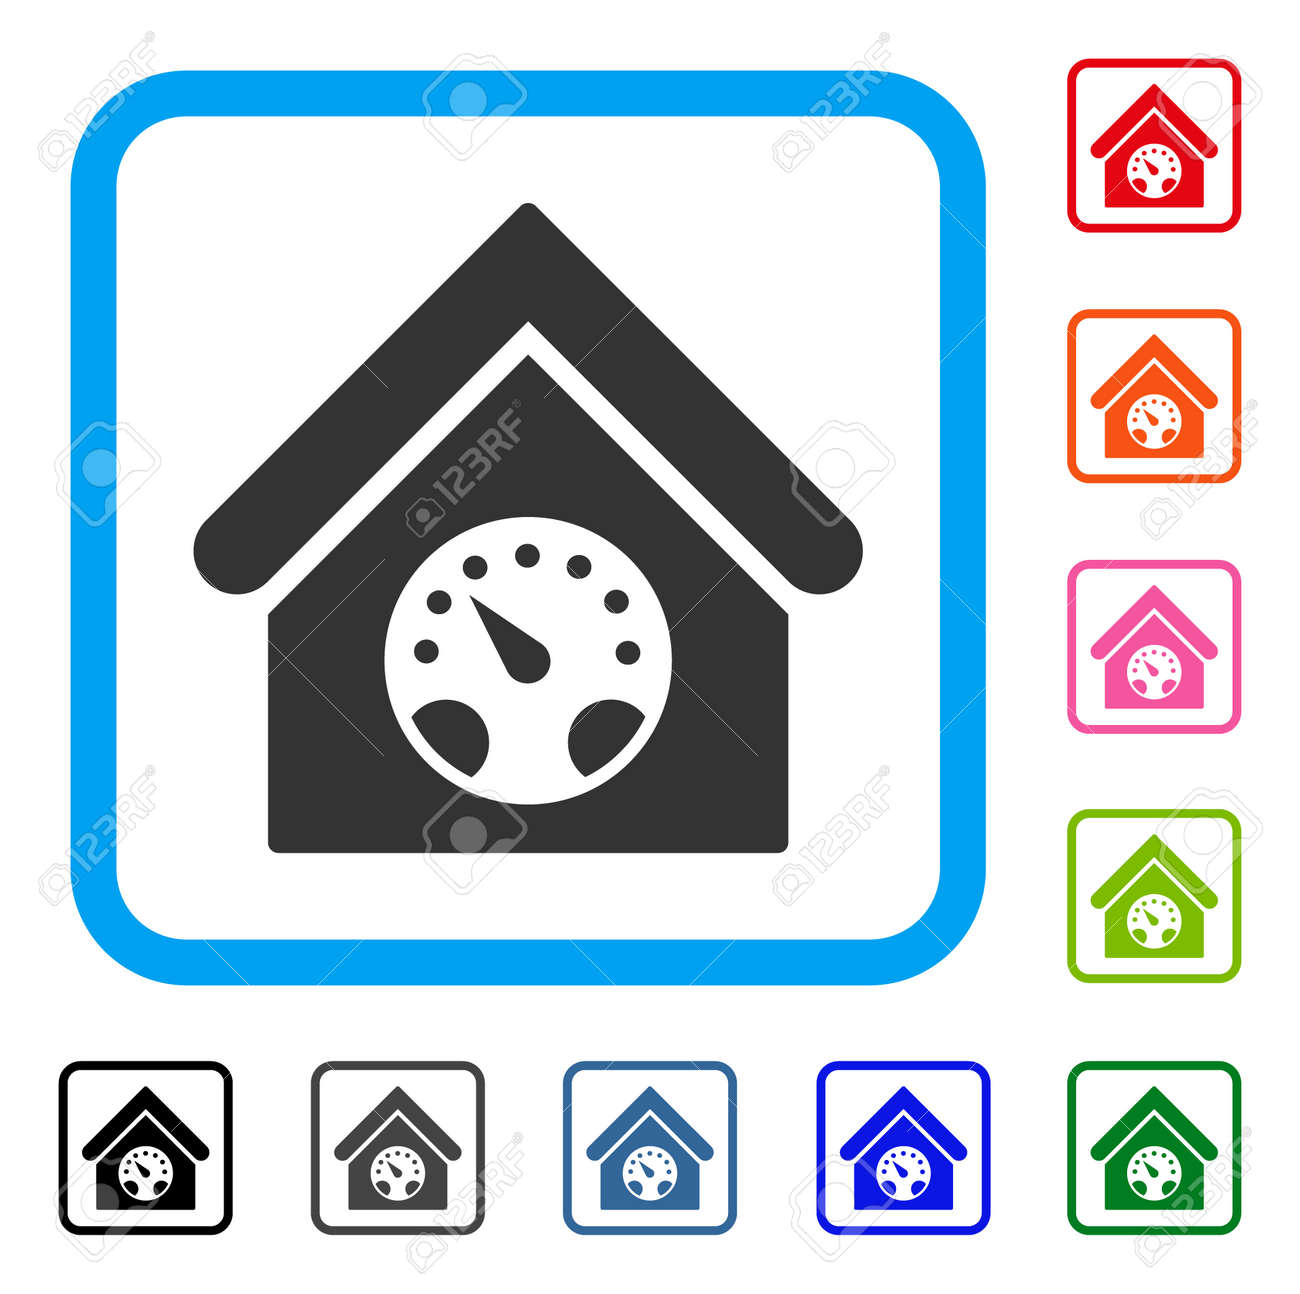 Meter Building Icon Flat Gray Iconic Symbol Inside A Blue Rounded